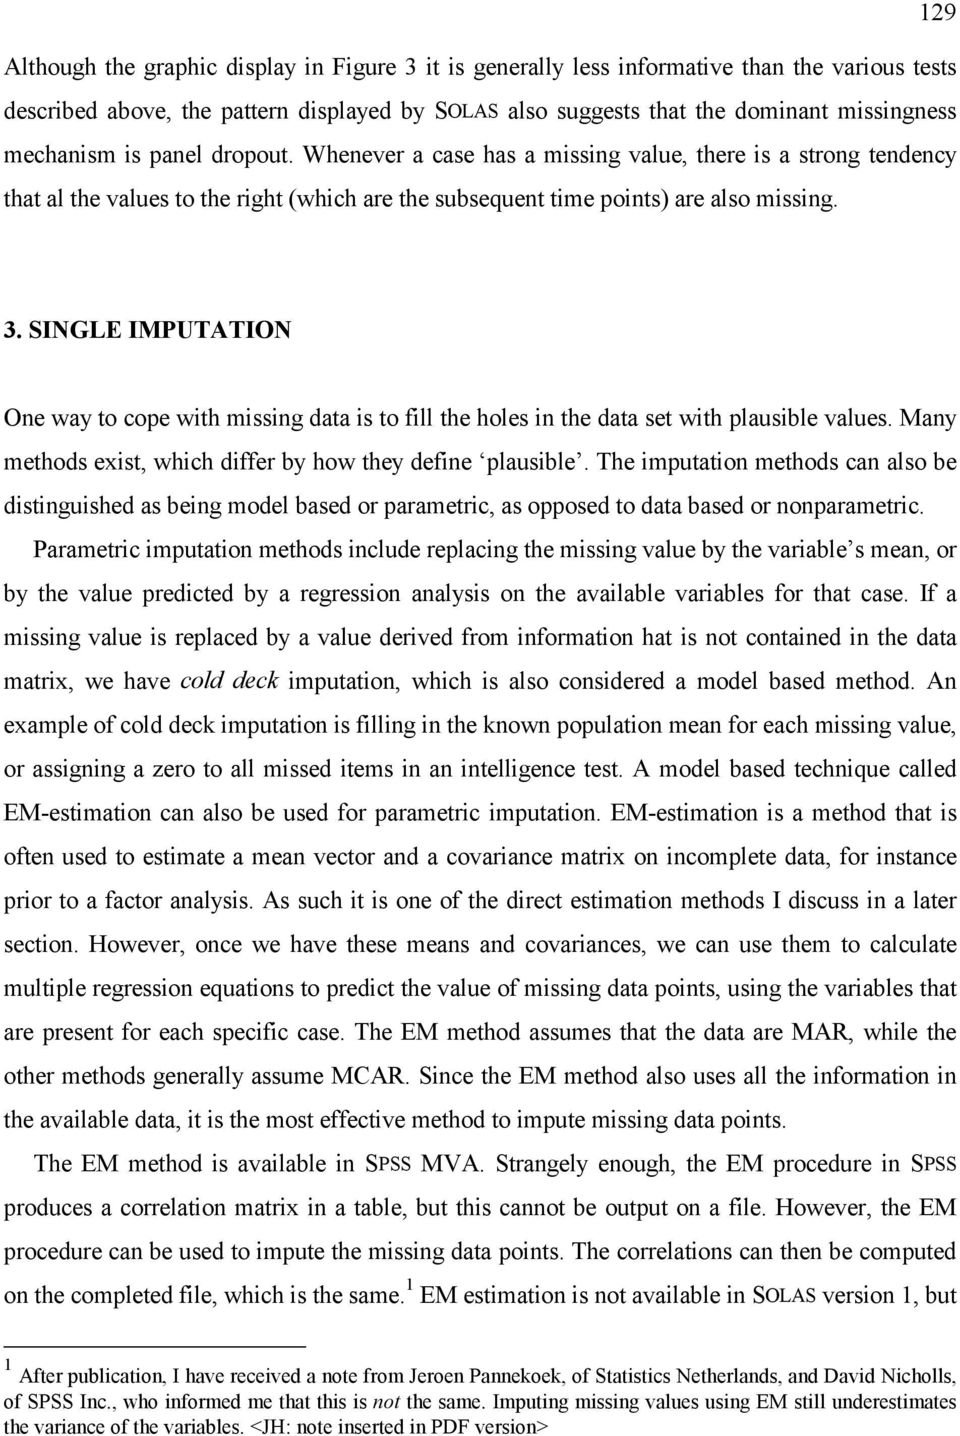 SINGLE IMPUTATION One way to cope with missing data is to fill the holes in the data set with plausible values. Many methods exist, which differ by how they define plausible.